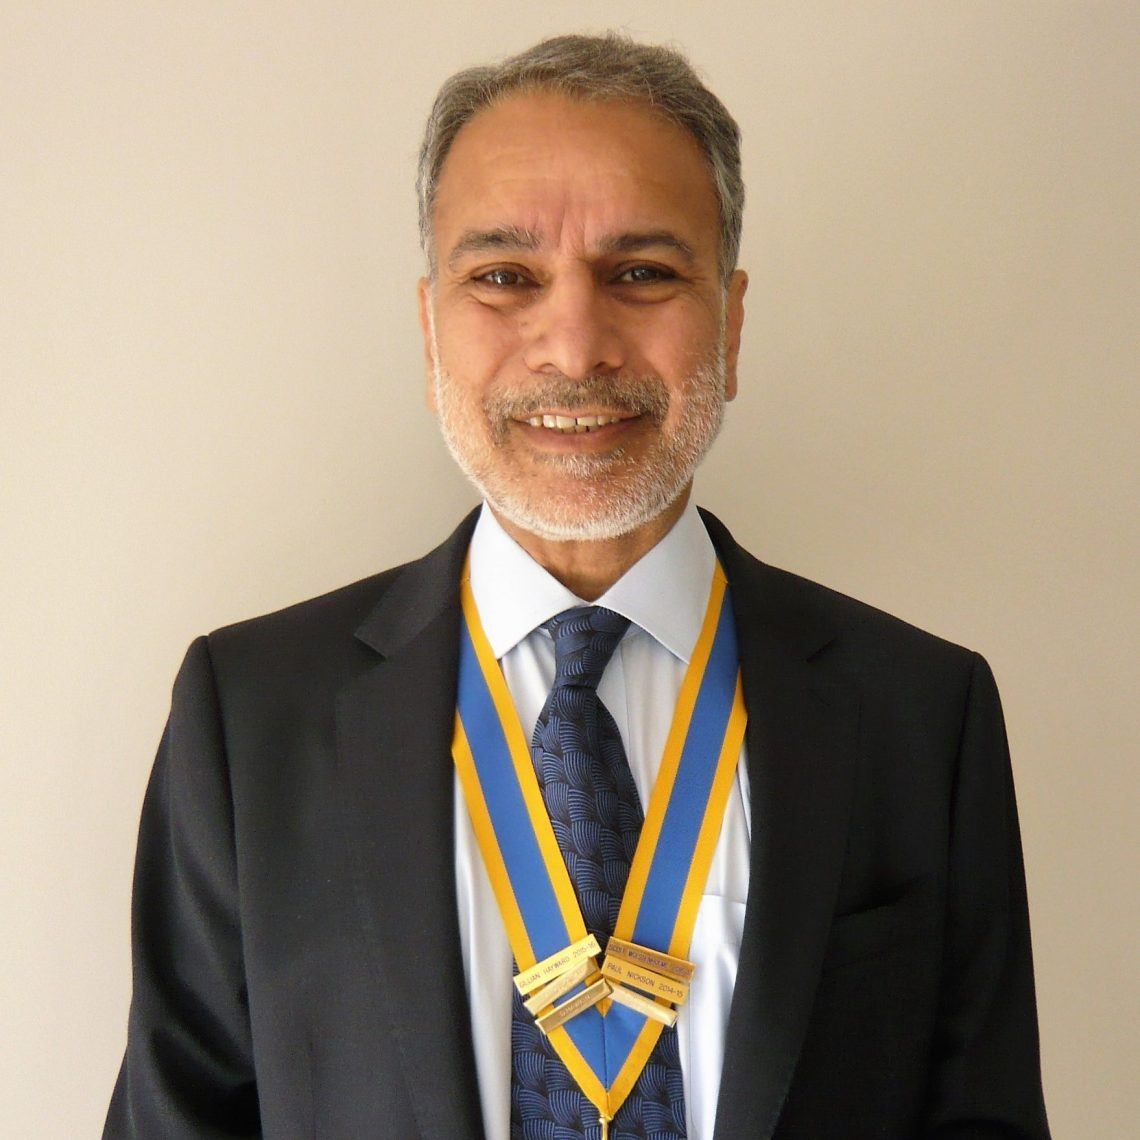 A welcome message from president Gurminder Singh